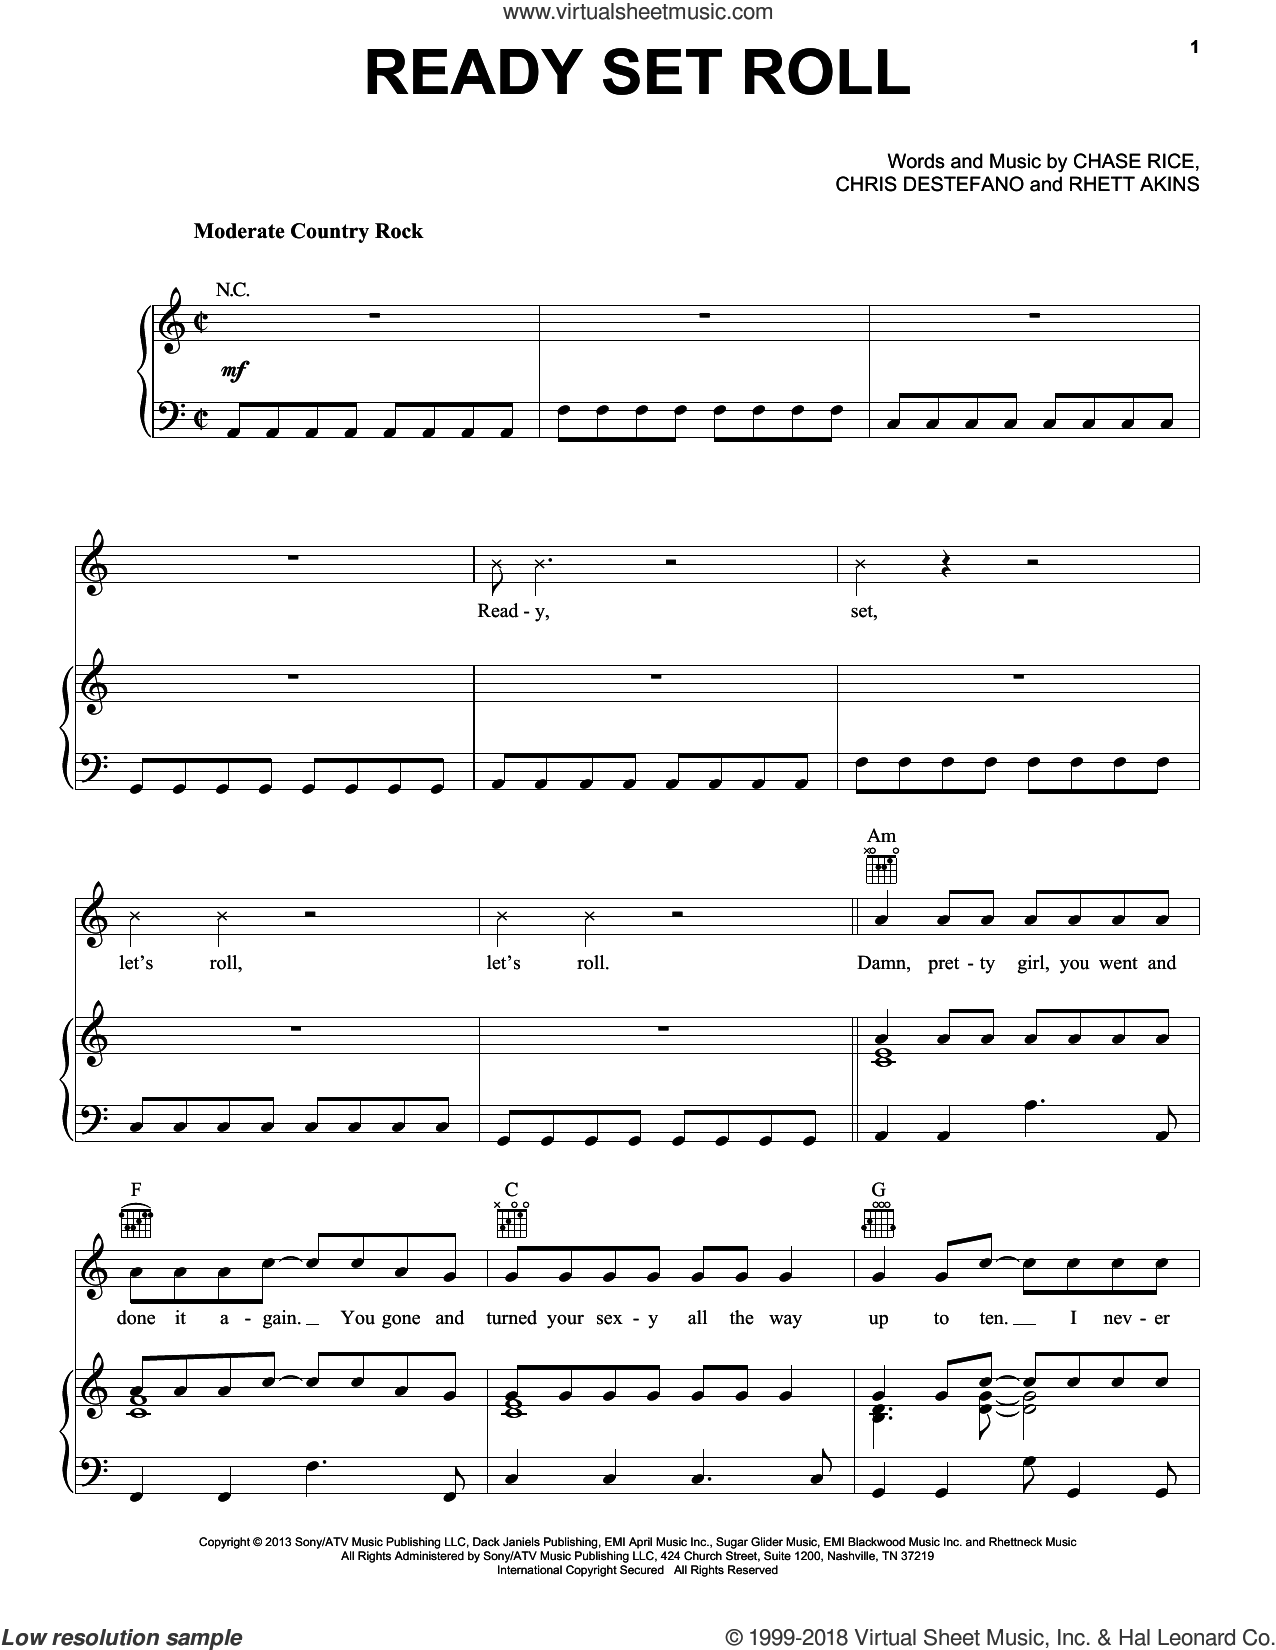 Ready Set Roll sheet music for voice, piano or guitar by Chase Rice, Chris Destefano and Rhett Akins, intermediate skill level